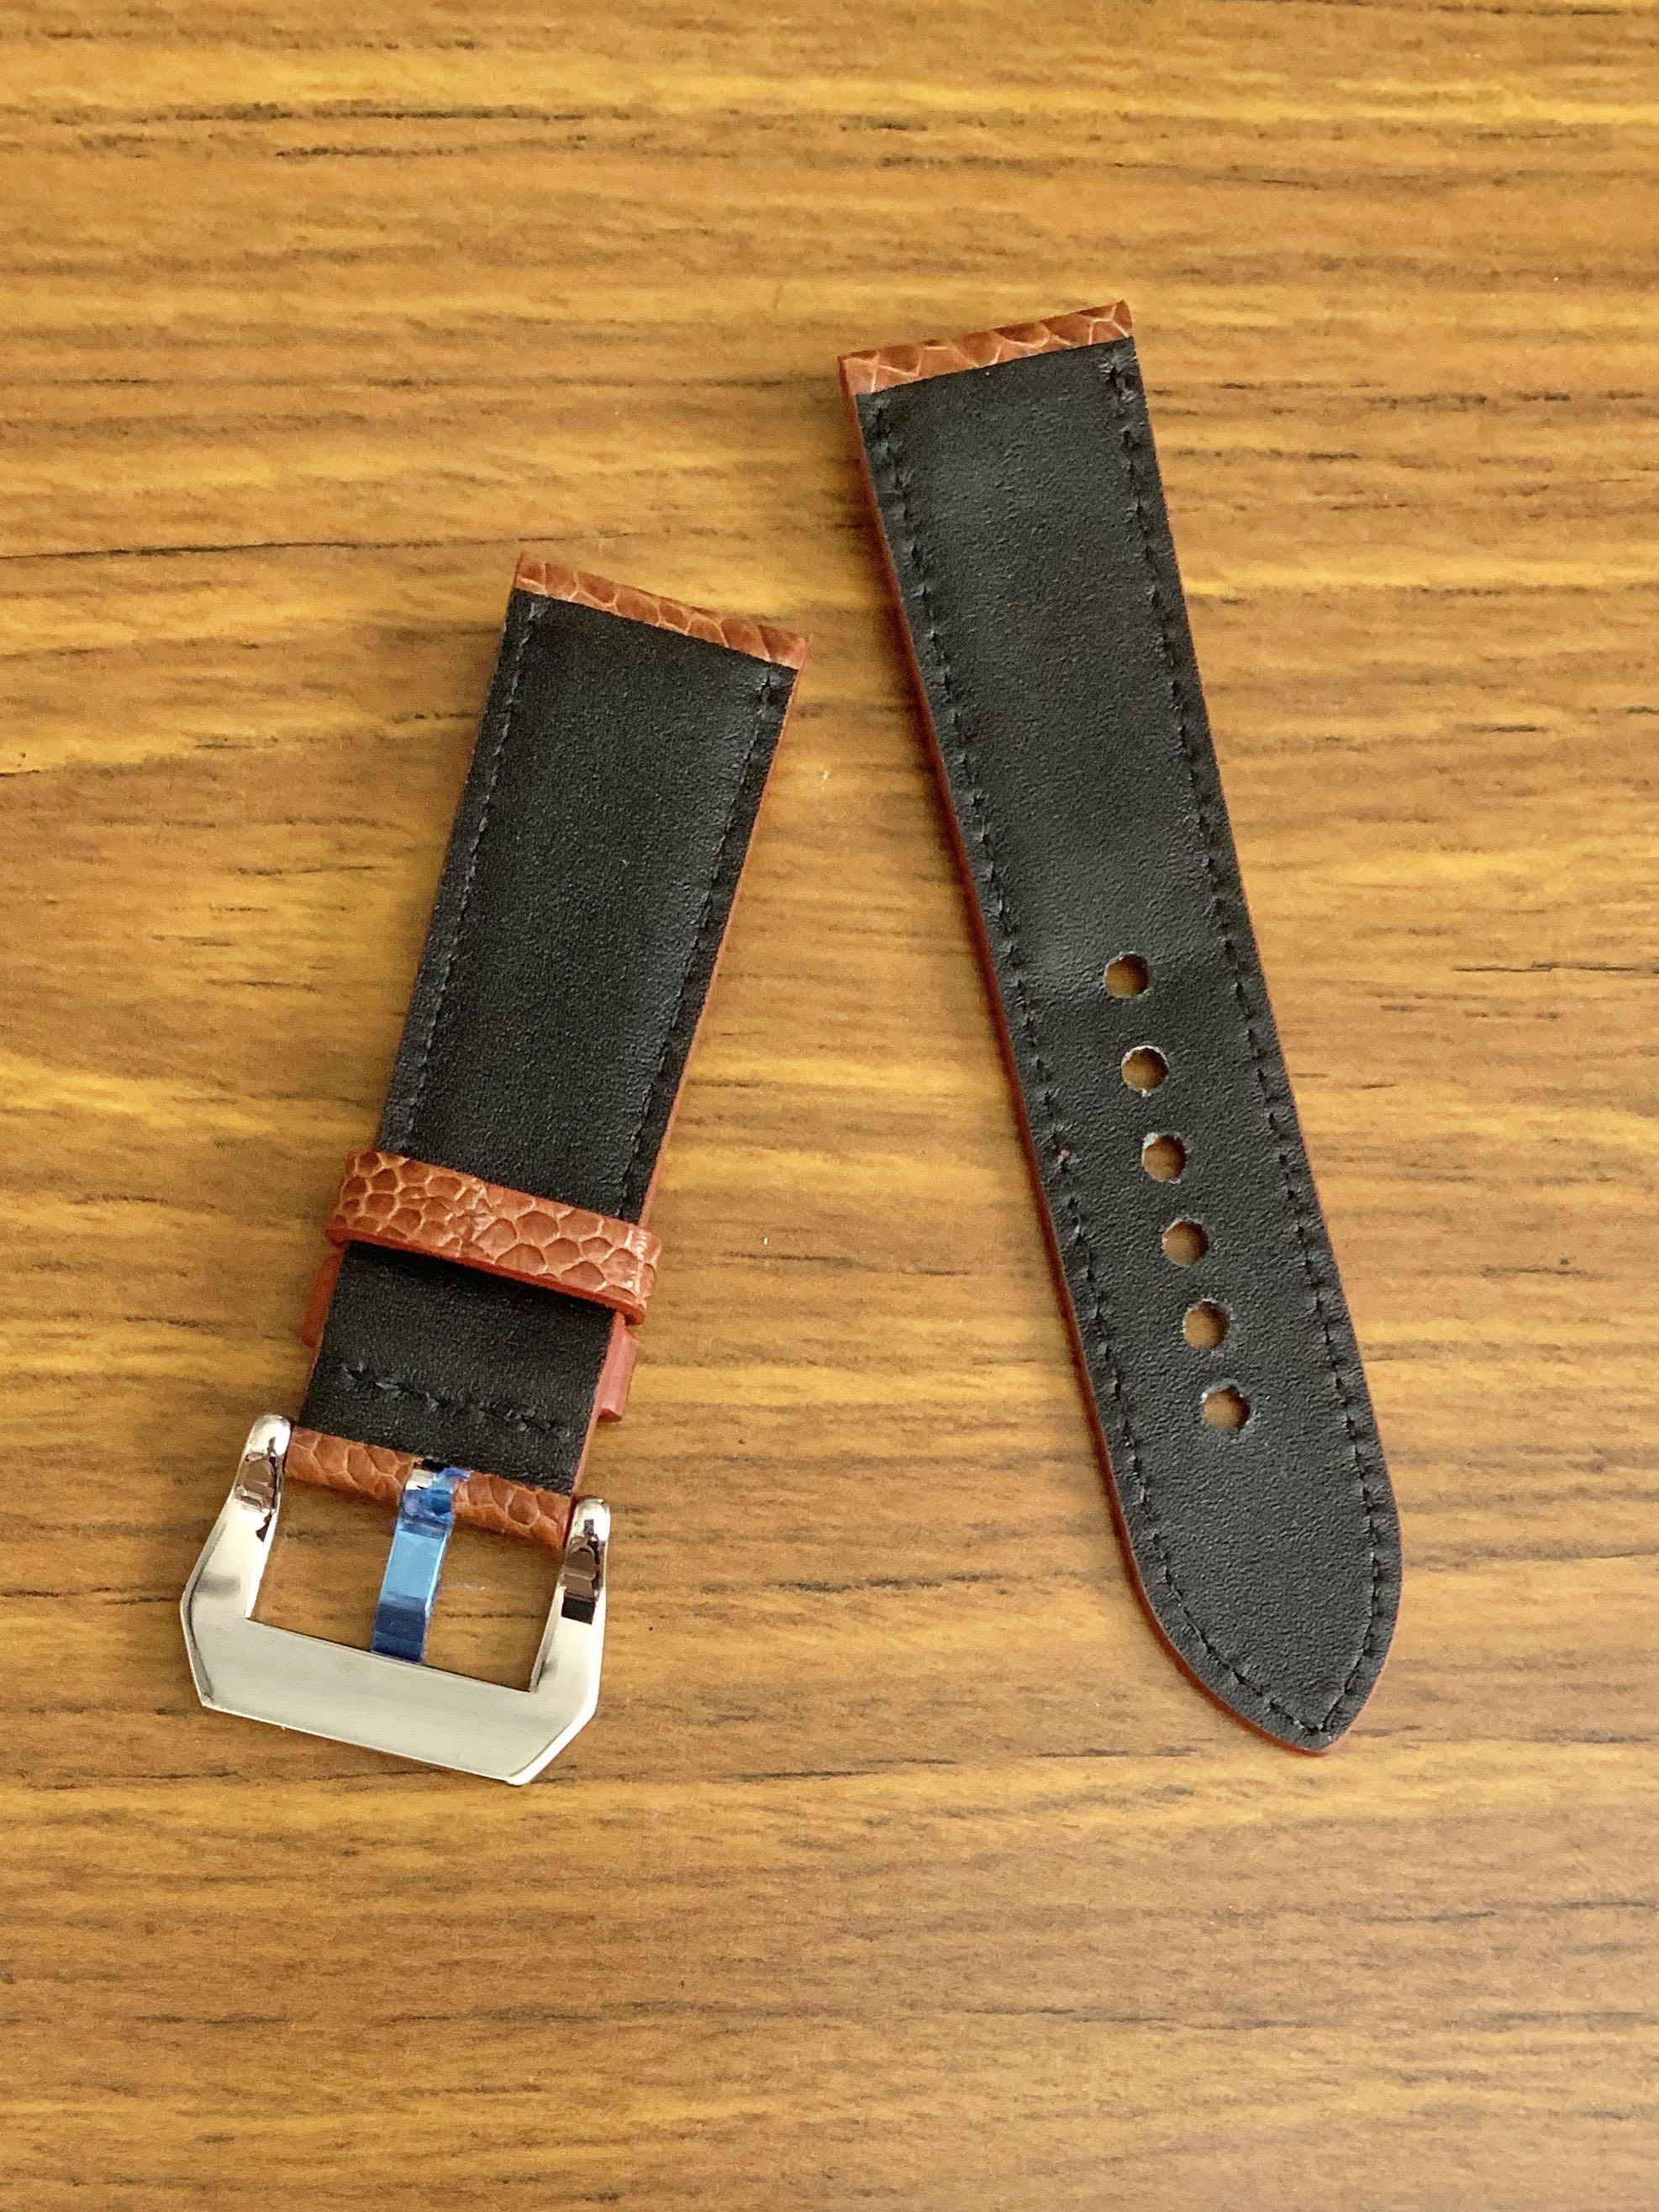 24mm/22mm Authentic Whiskey Brown Ostrich Leg (big scales) Leather Watch Strap - (gorgeous scales- only piece like that, once sold no more 😊) (Standard length: L-120mm, S-75mm)